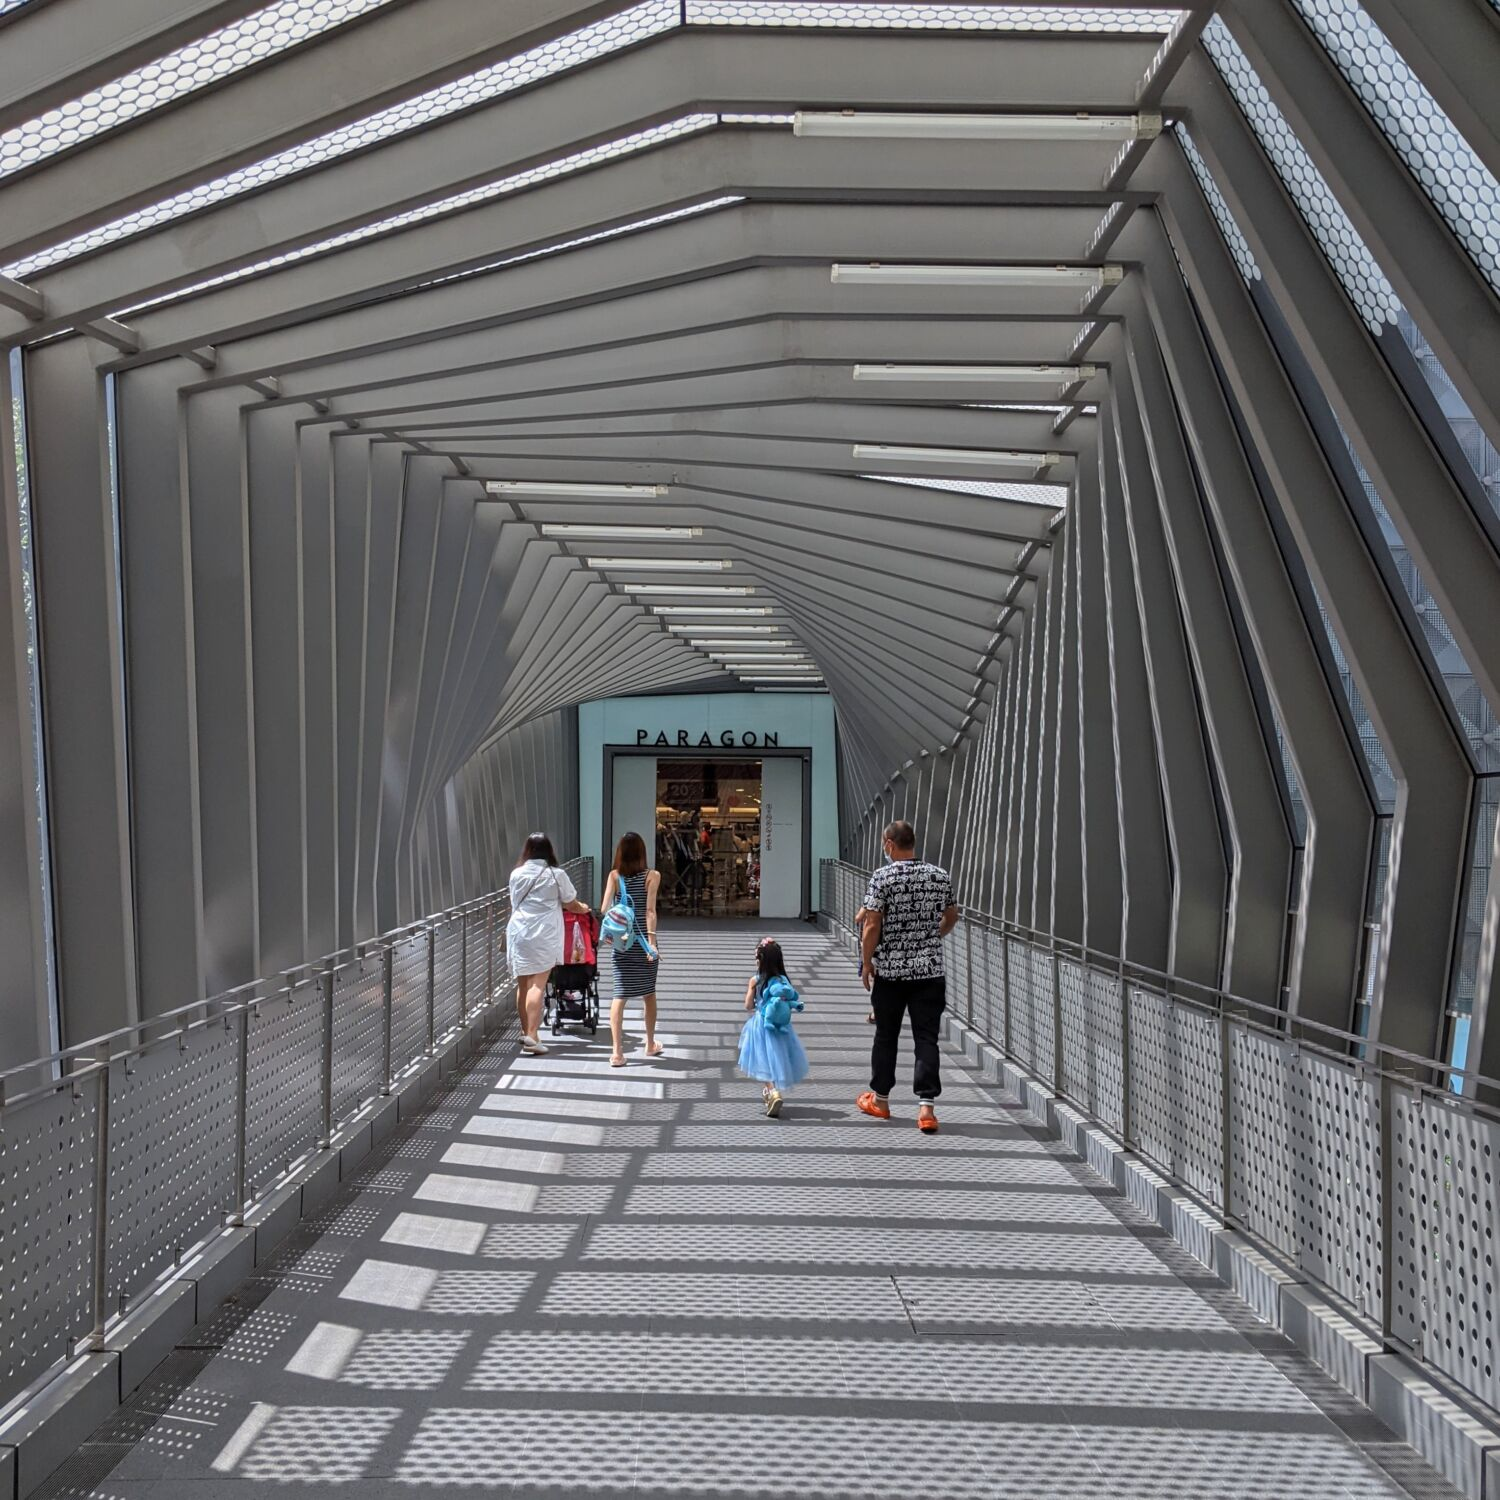 Ascott Orchard Singapore Covered Bridge Access to Paragon Mall